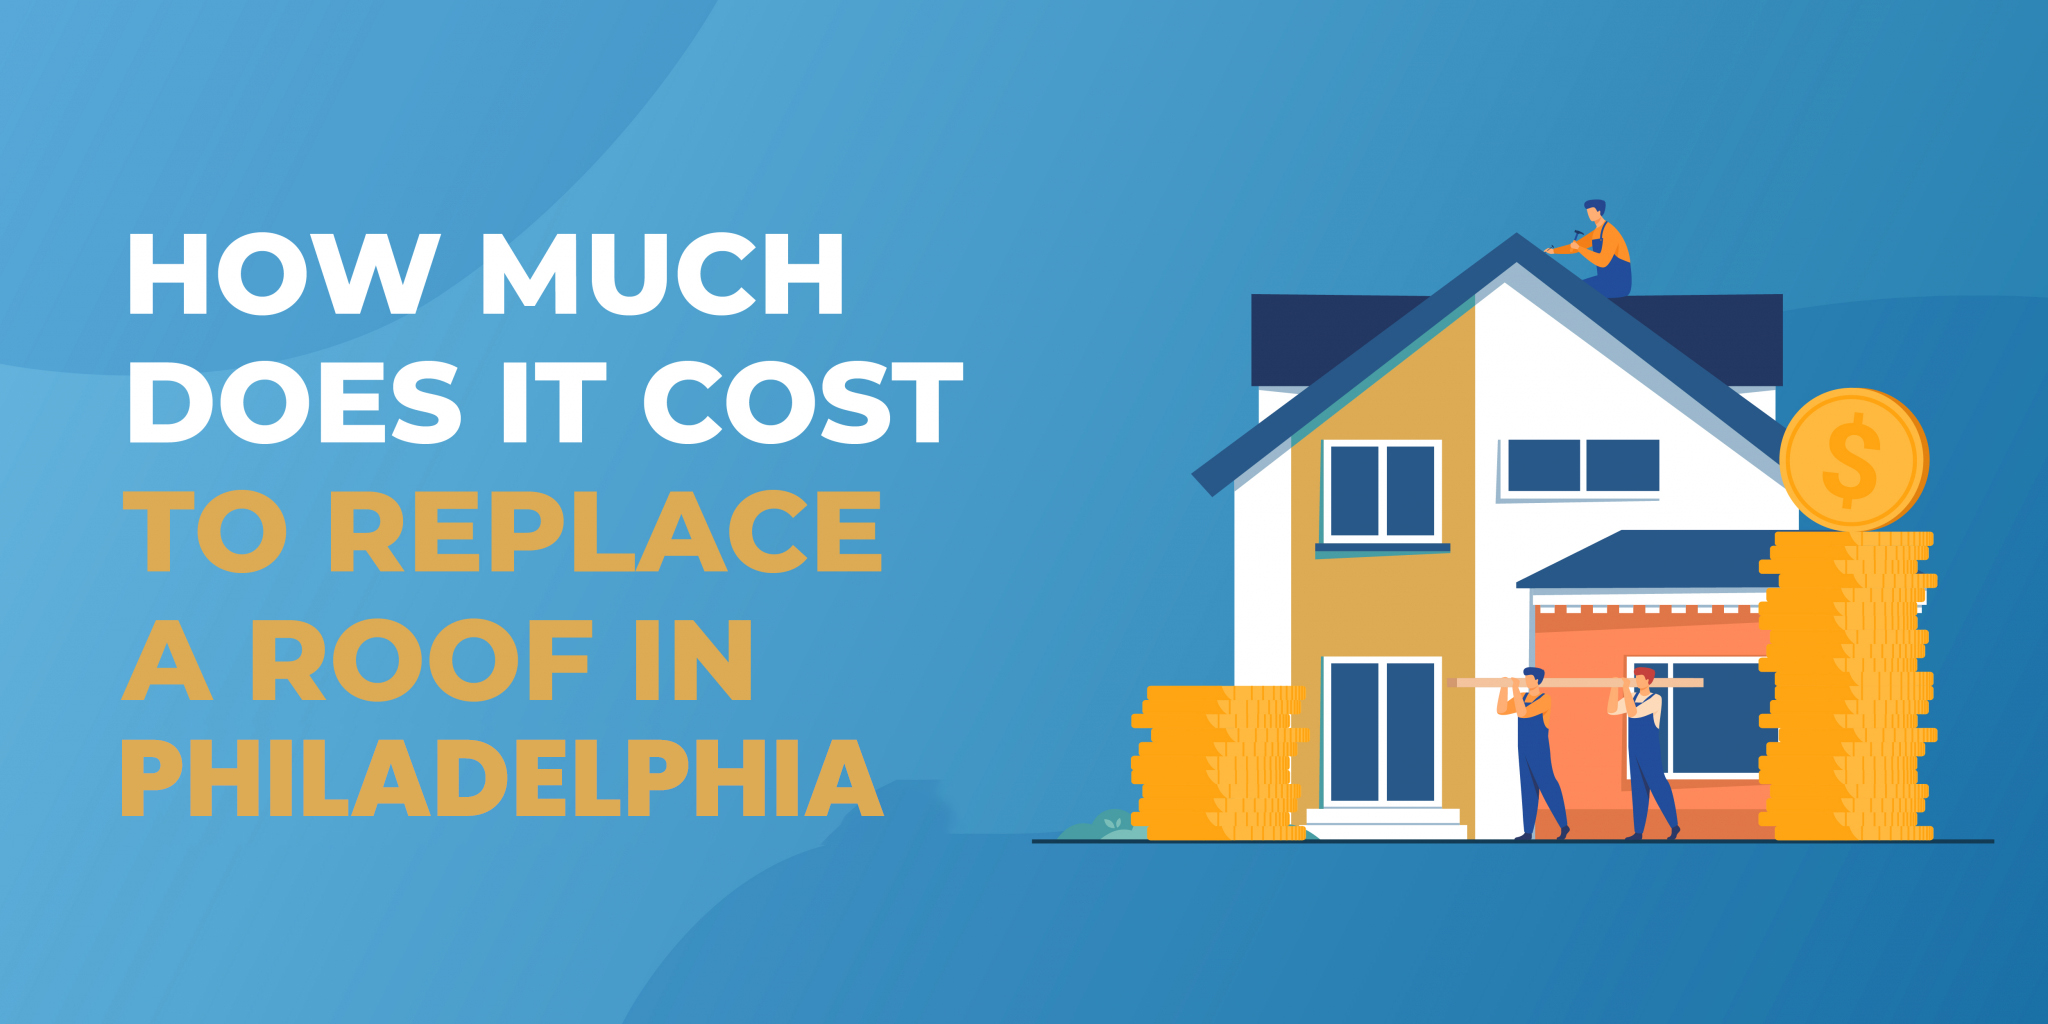 How Much Does it Cost to Replace a Roof in Philadelphia?